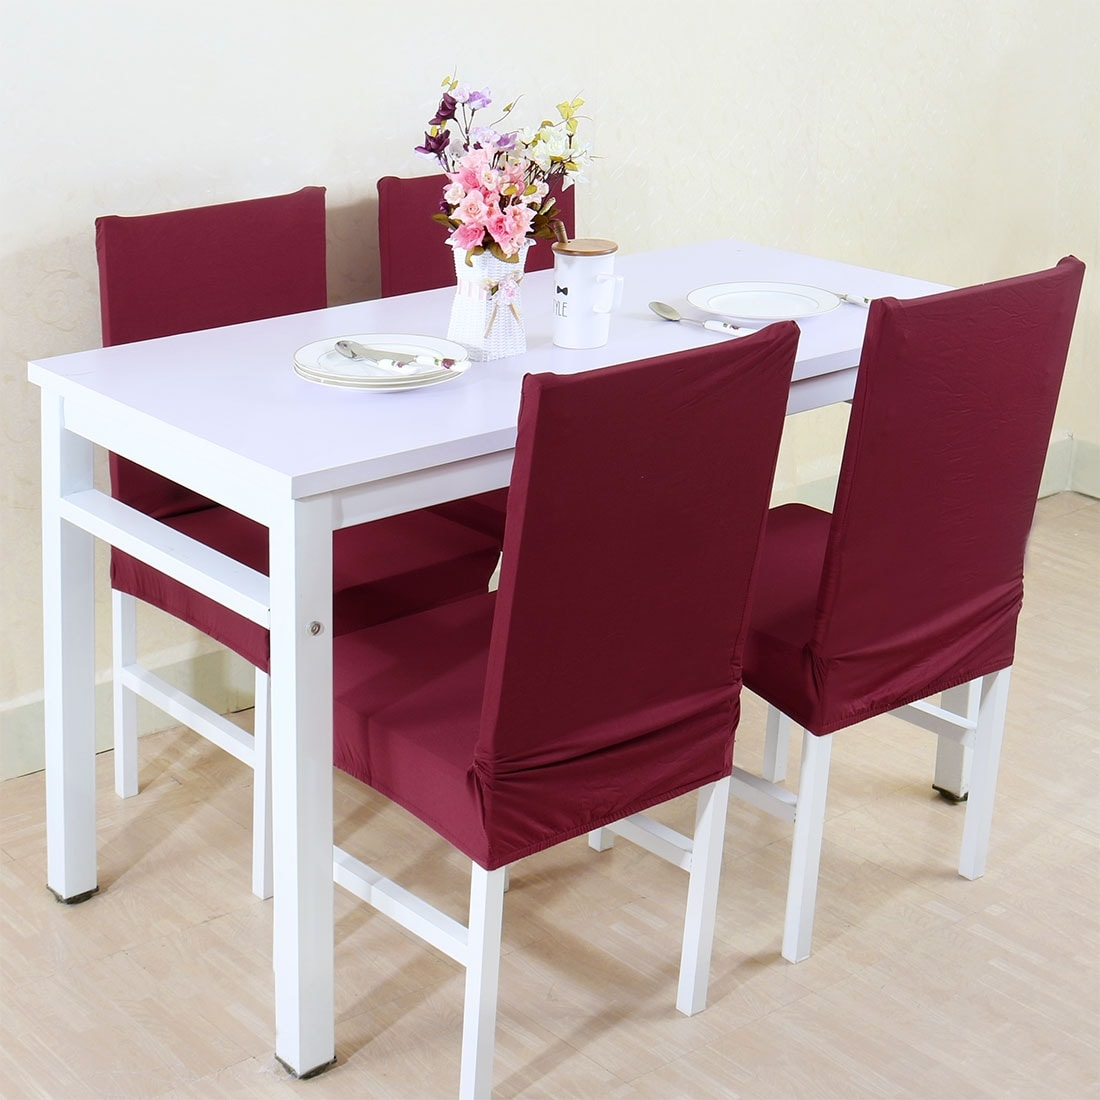 Unique bargains burgundy spandex washable dining chair cover unique bargains burgundy spandex washable dining chair cover protector free shipping on orders over 45 overstock 22957826 dzzzfo